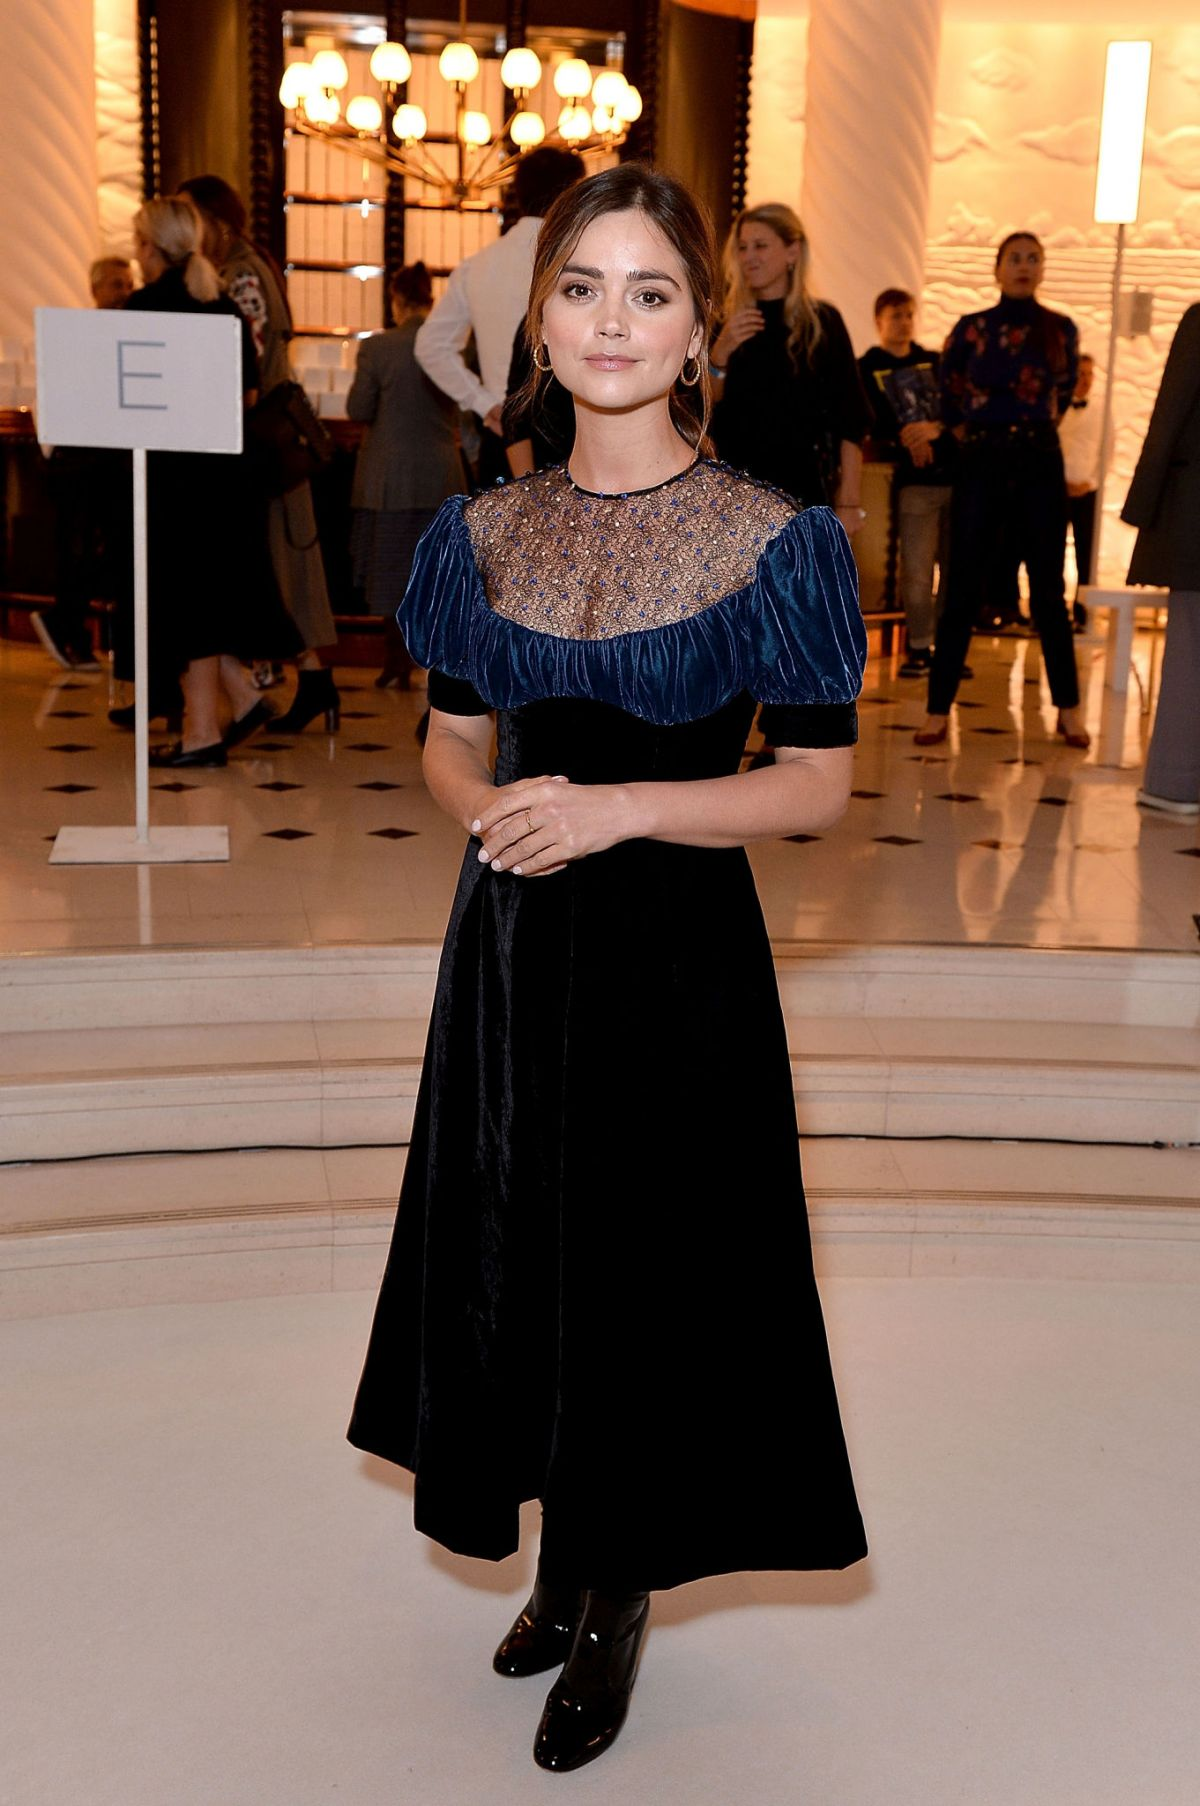 JENNA LOUISE COLEMAN at Emilia Wickstead Fashion Show in London 09/18/2017